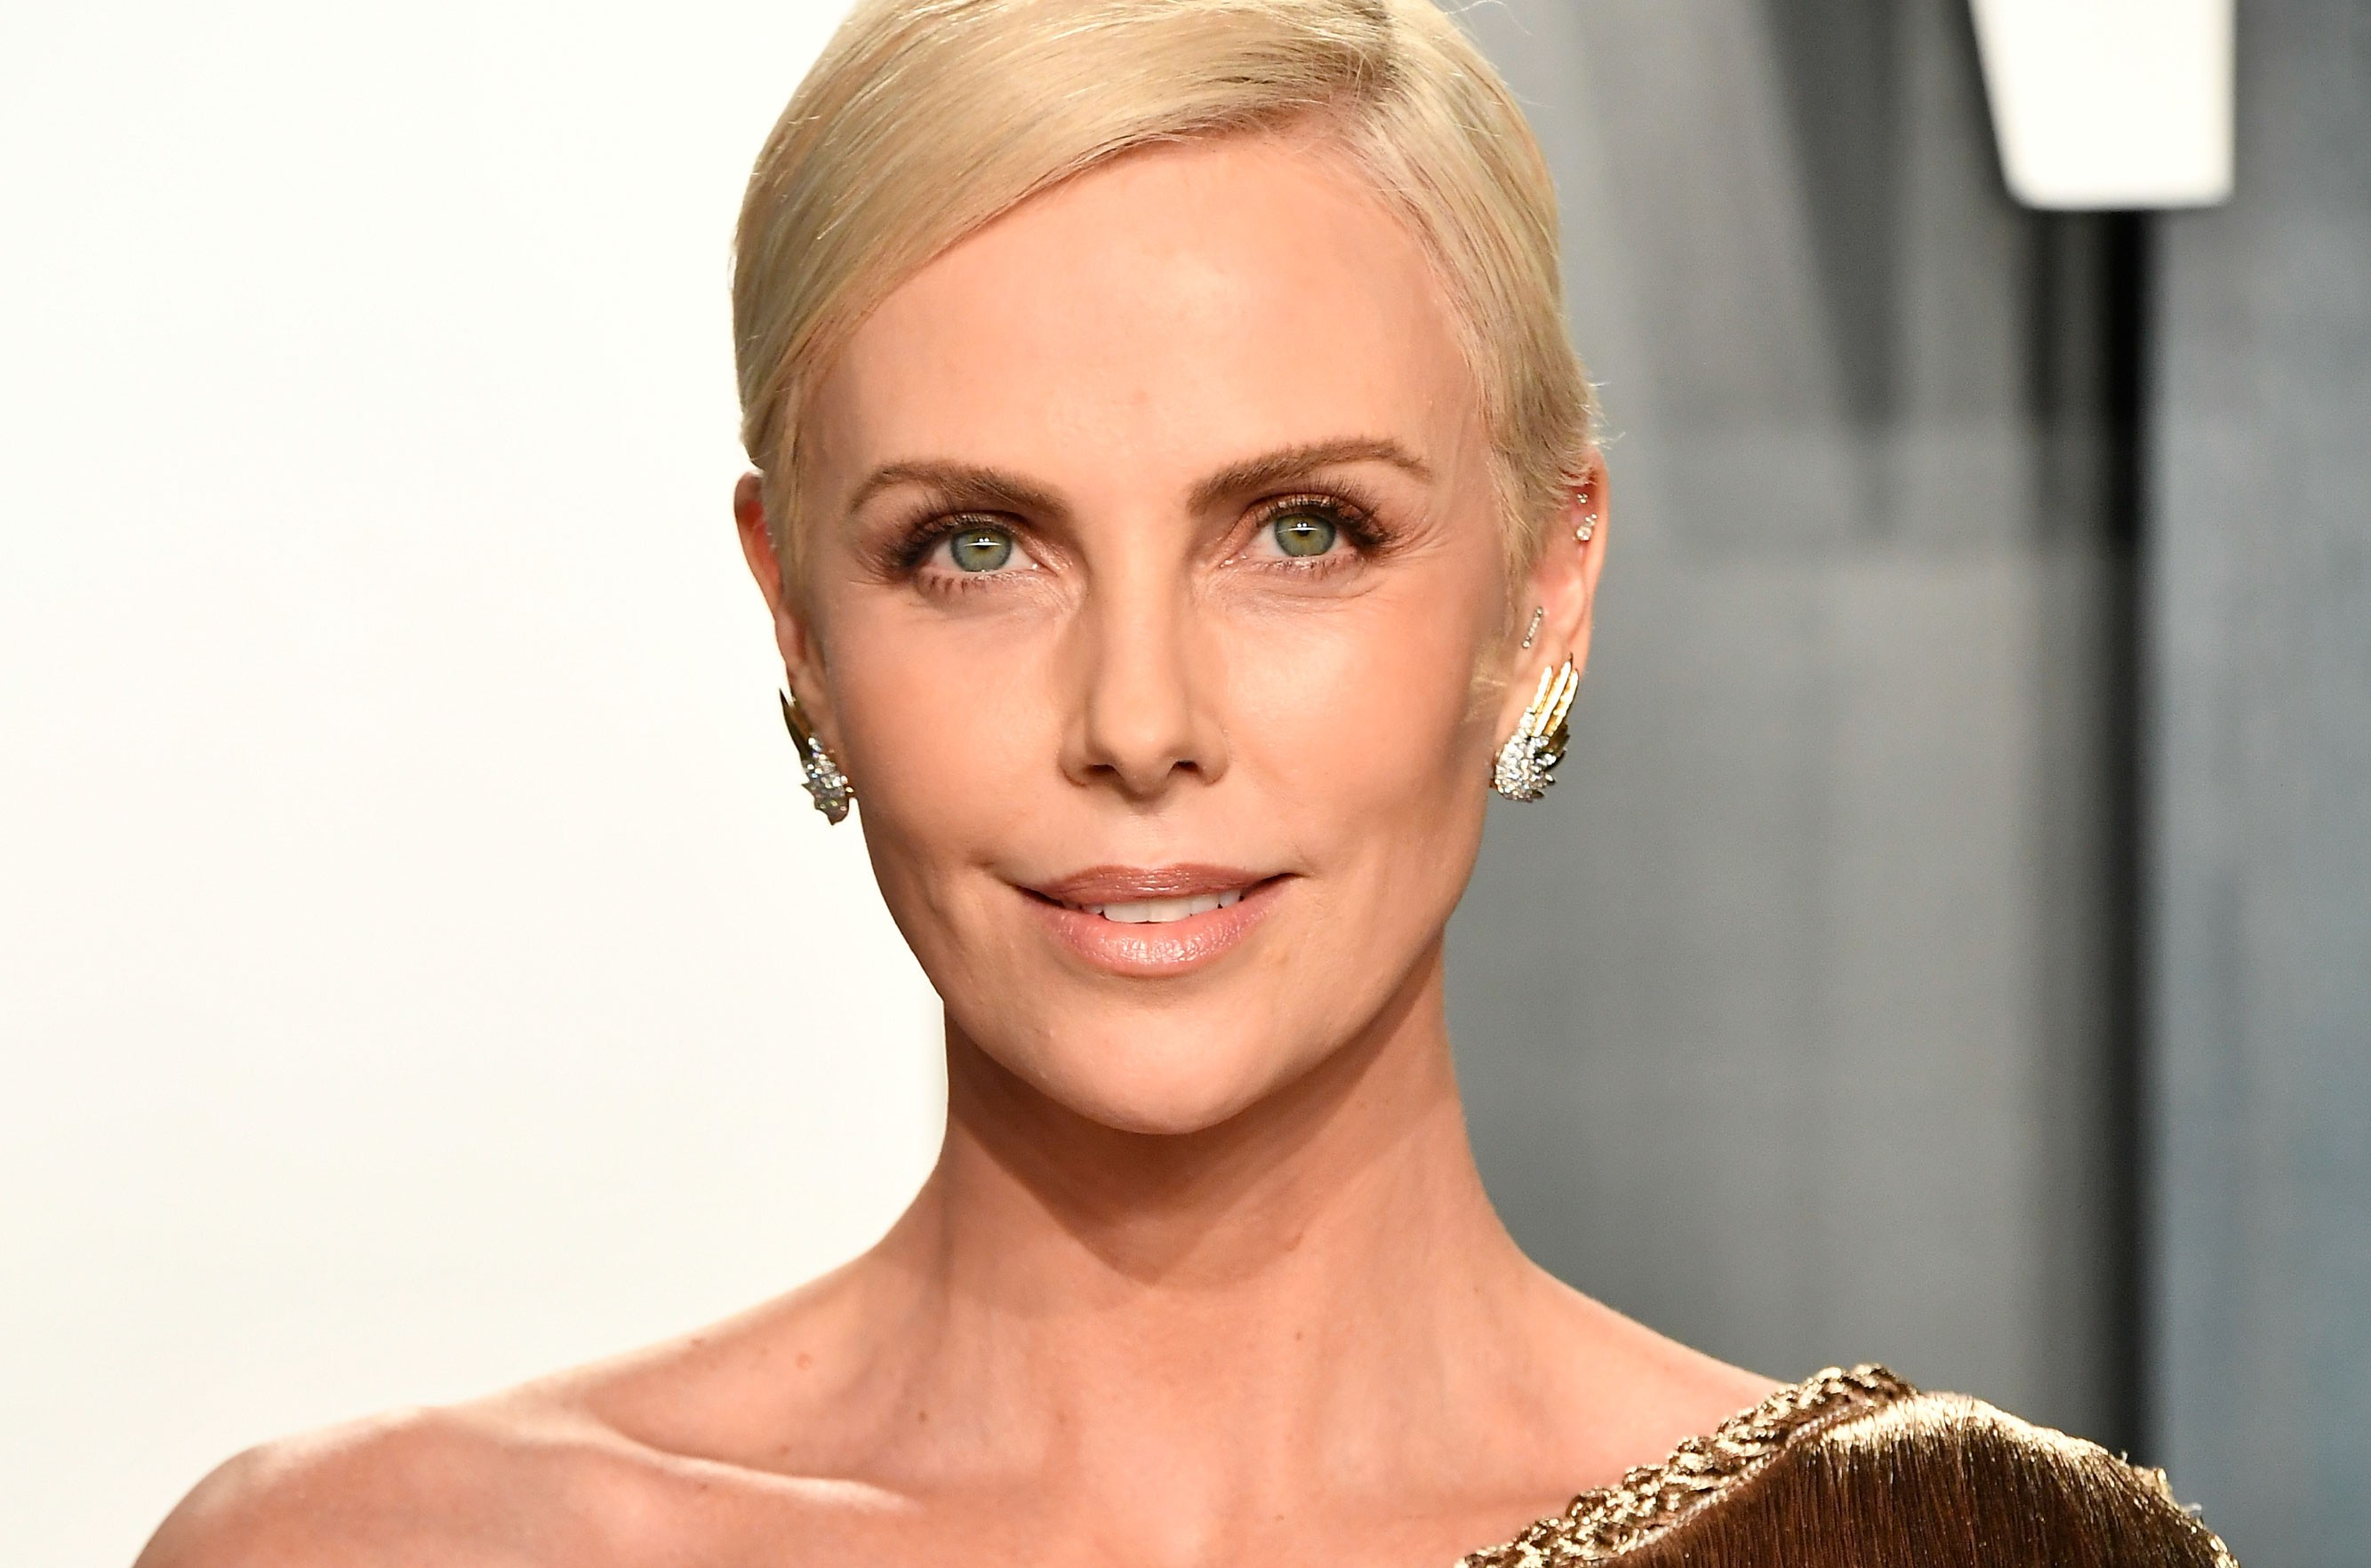 Charlize Theron Howard Stern 12 More Non Music Stars Who Have Inducted Rock And Roll Hall Of Famers Billboard Follow along as she struggles to do what's wrong and right, to follow the path of darkness, or the path of light.(let meh feel the love. charlize theron howard stern 12 more